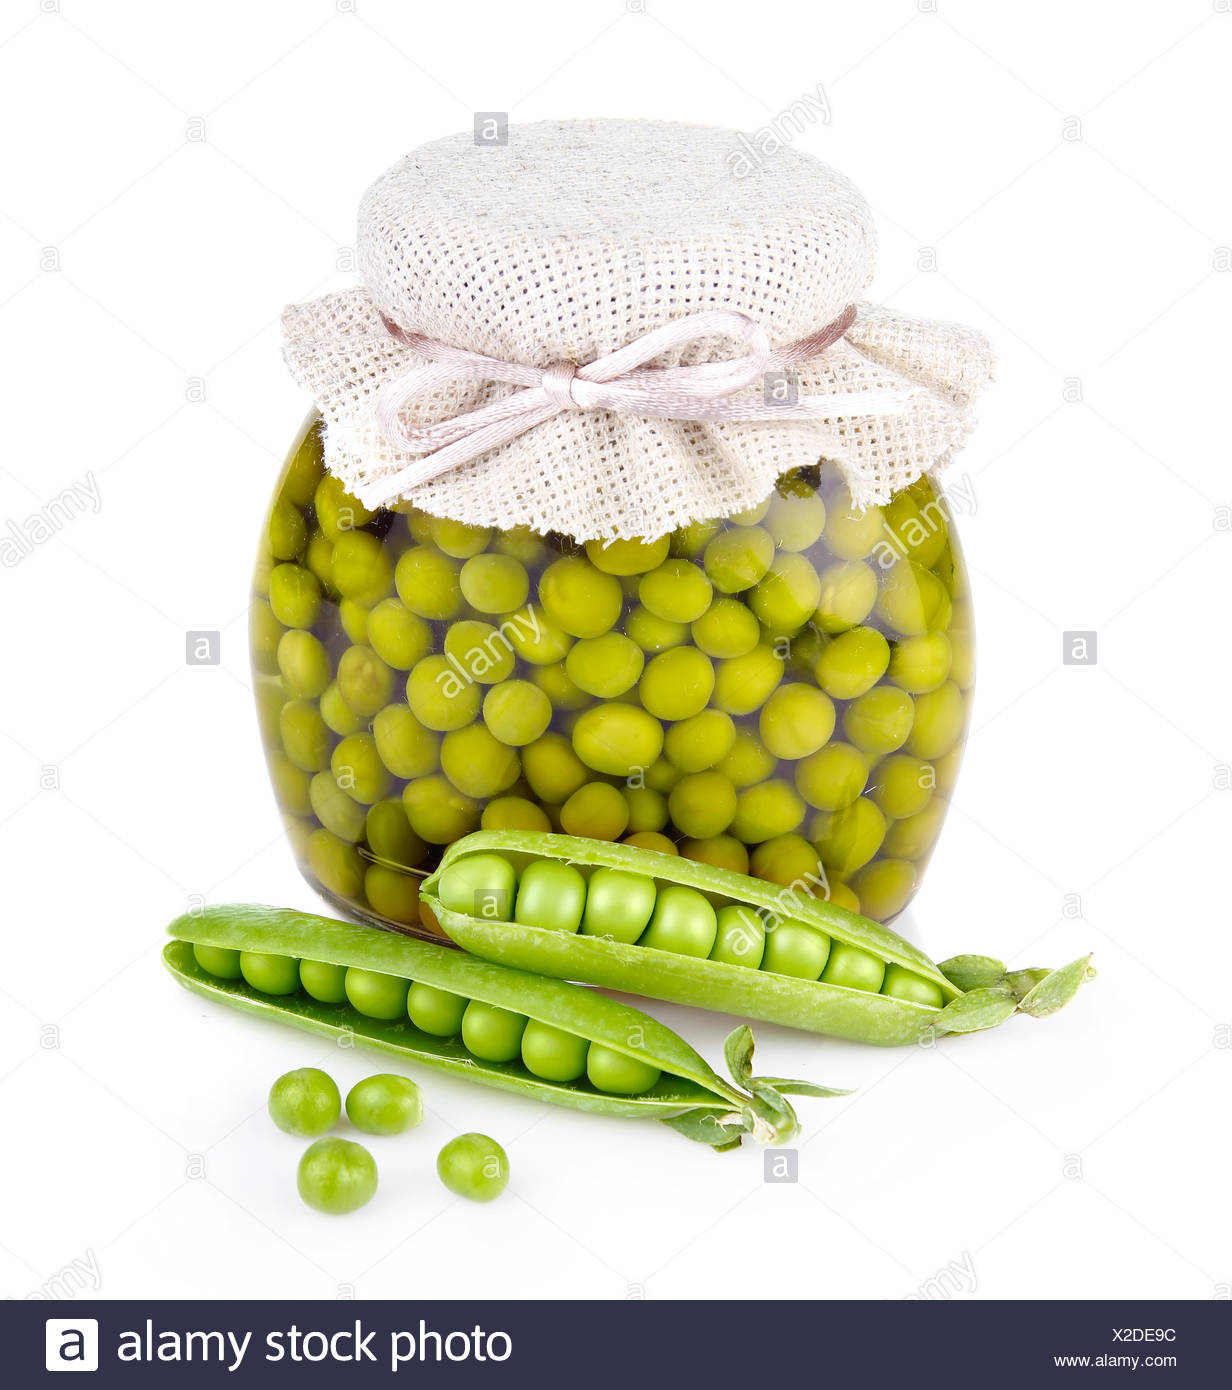 Glass jar of preserved peas and pods isolated on white - Stock Image